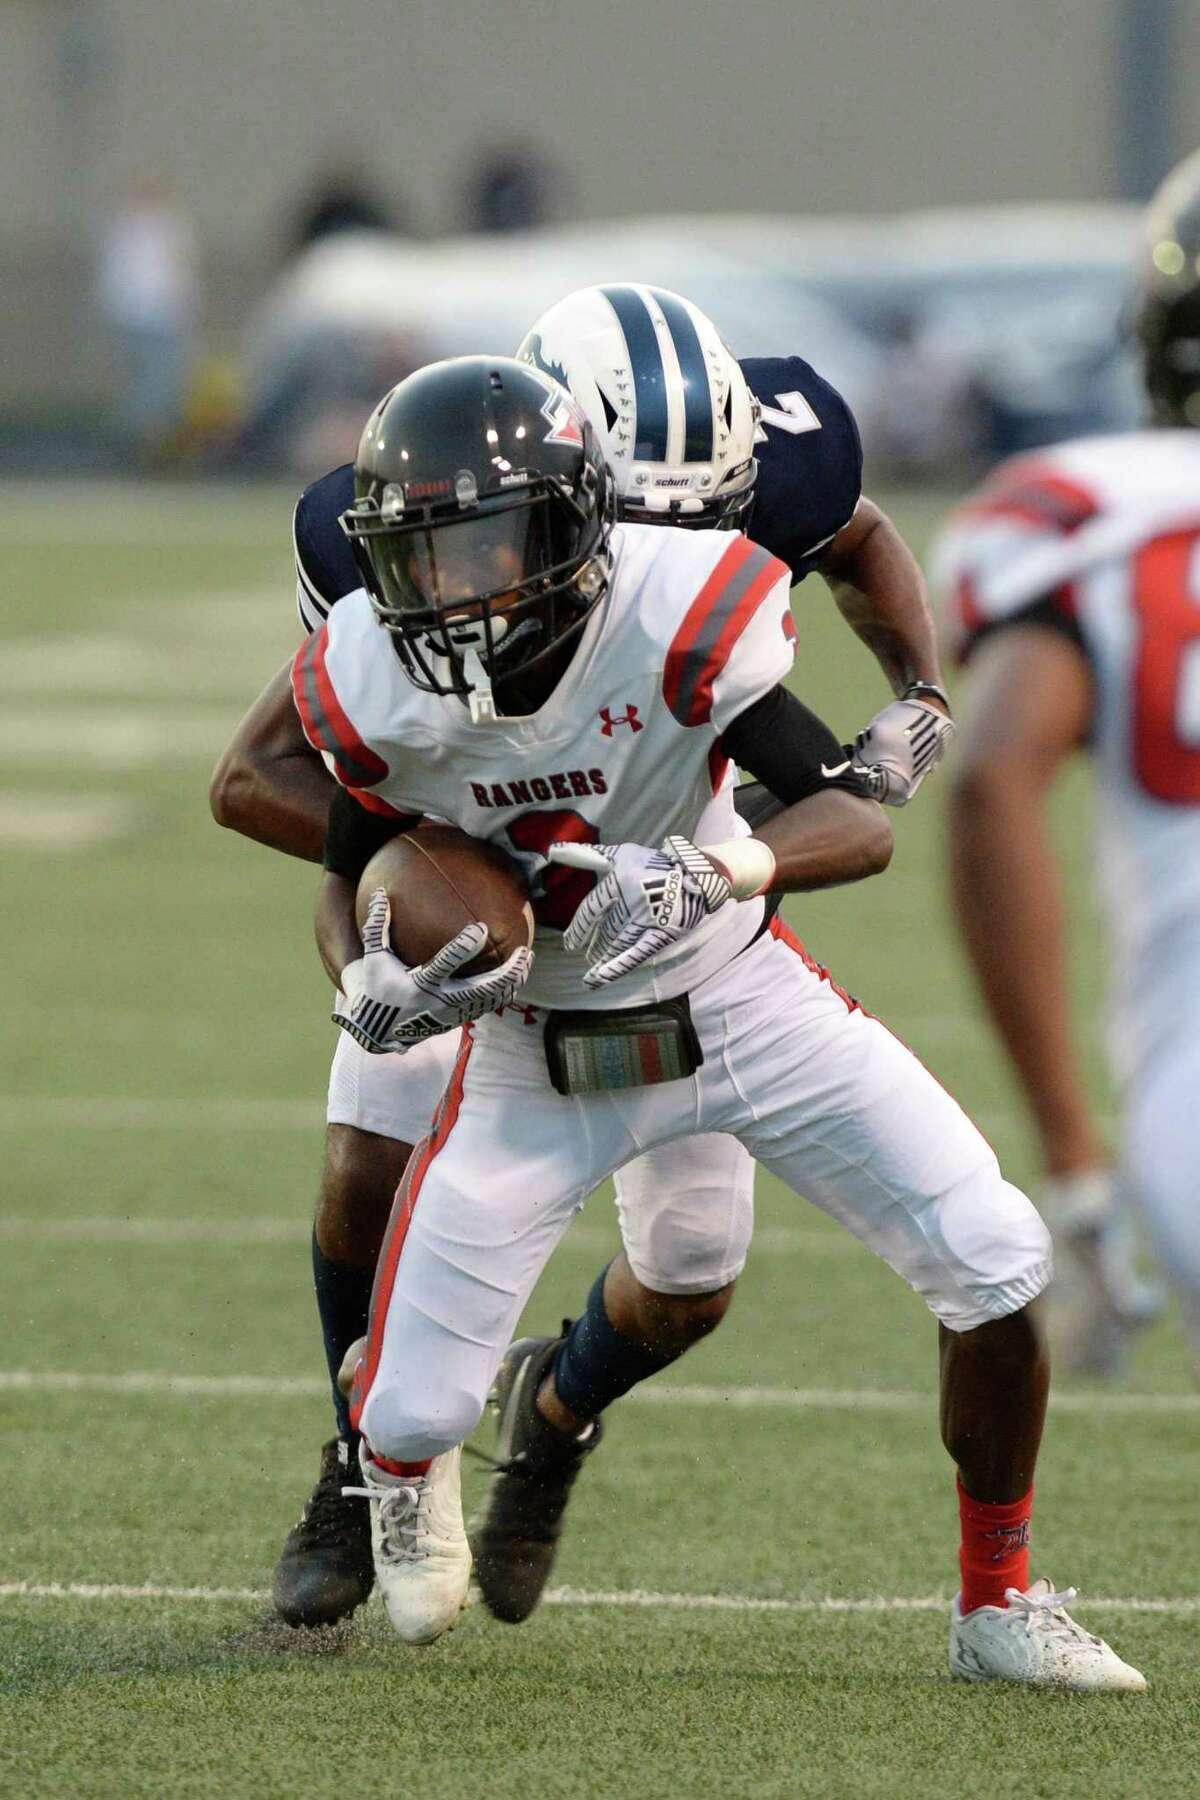 Sergio Simmons (3) of Terry carries the ball during the first quarter of a high school football game between the Lamar Consolidated Mustangs and the Terry Rangers on Friday, September 13, 2019 at Traylor Stadium, Rosenberg, TX.